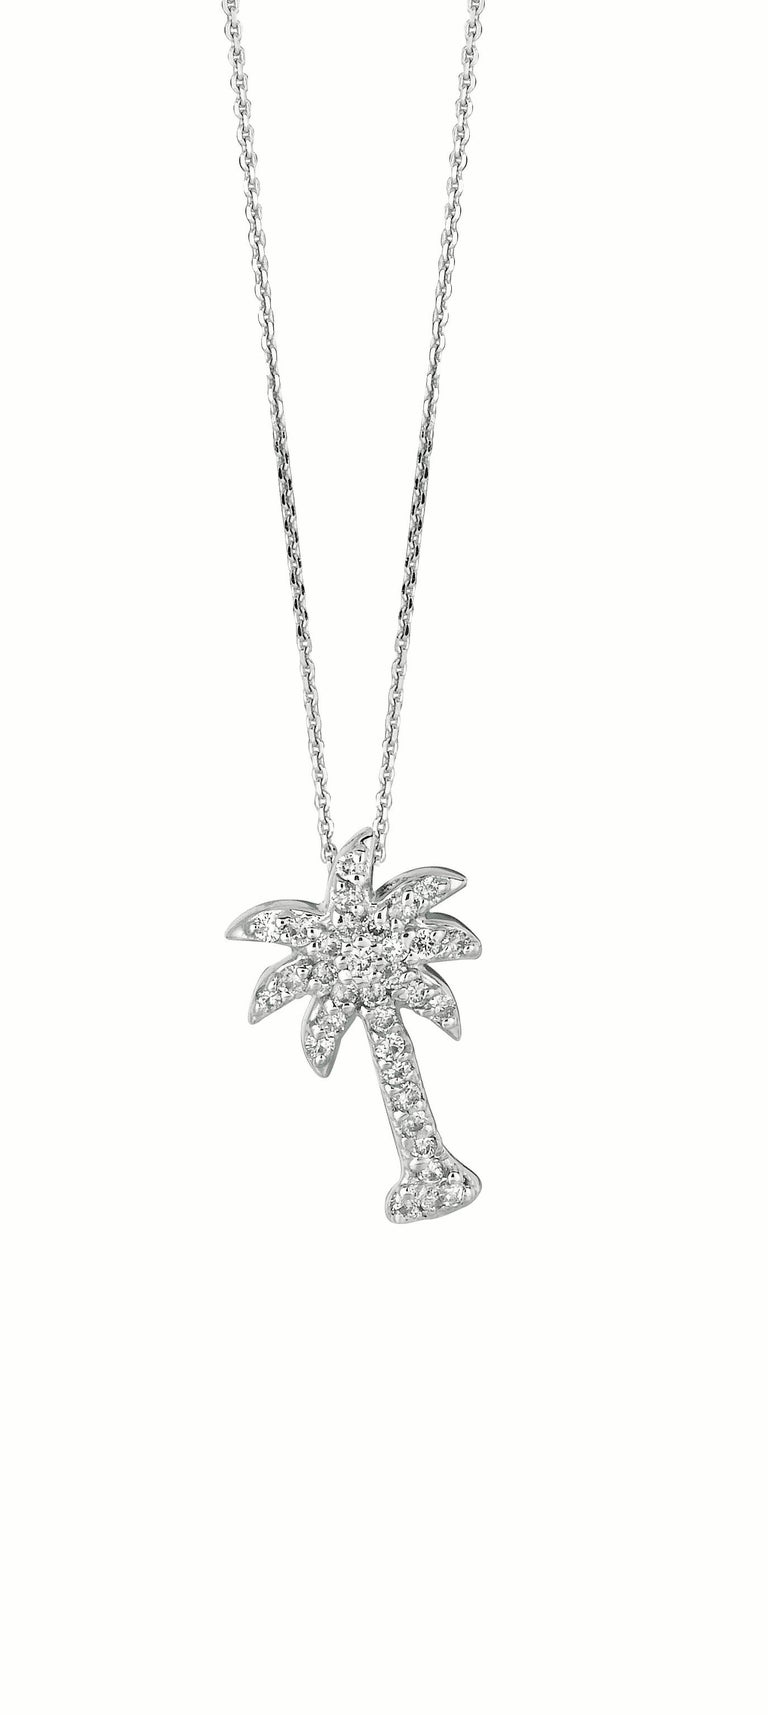 0.25 Carat Natural Diamond Palm Tree Necklace 14K White Gold      100% Natural Diamonds, Not Enhanced in any way Round Cut Diamond Necklace with 18'' or 16'' chain  to your choice     0.25CT     Color G-H      Clarity SI       14K White Gold   Pave